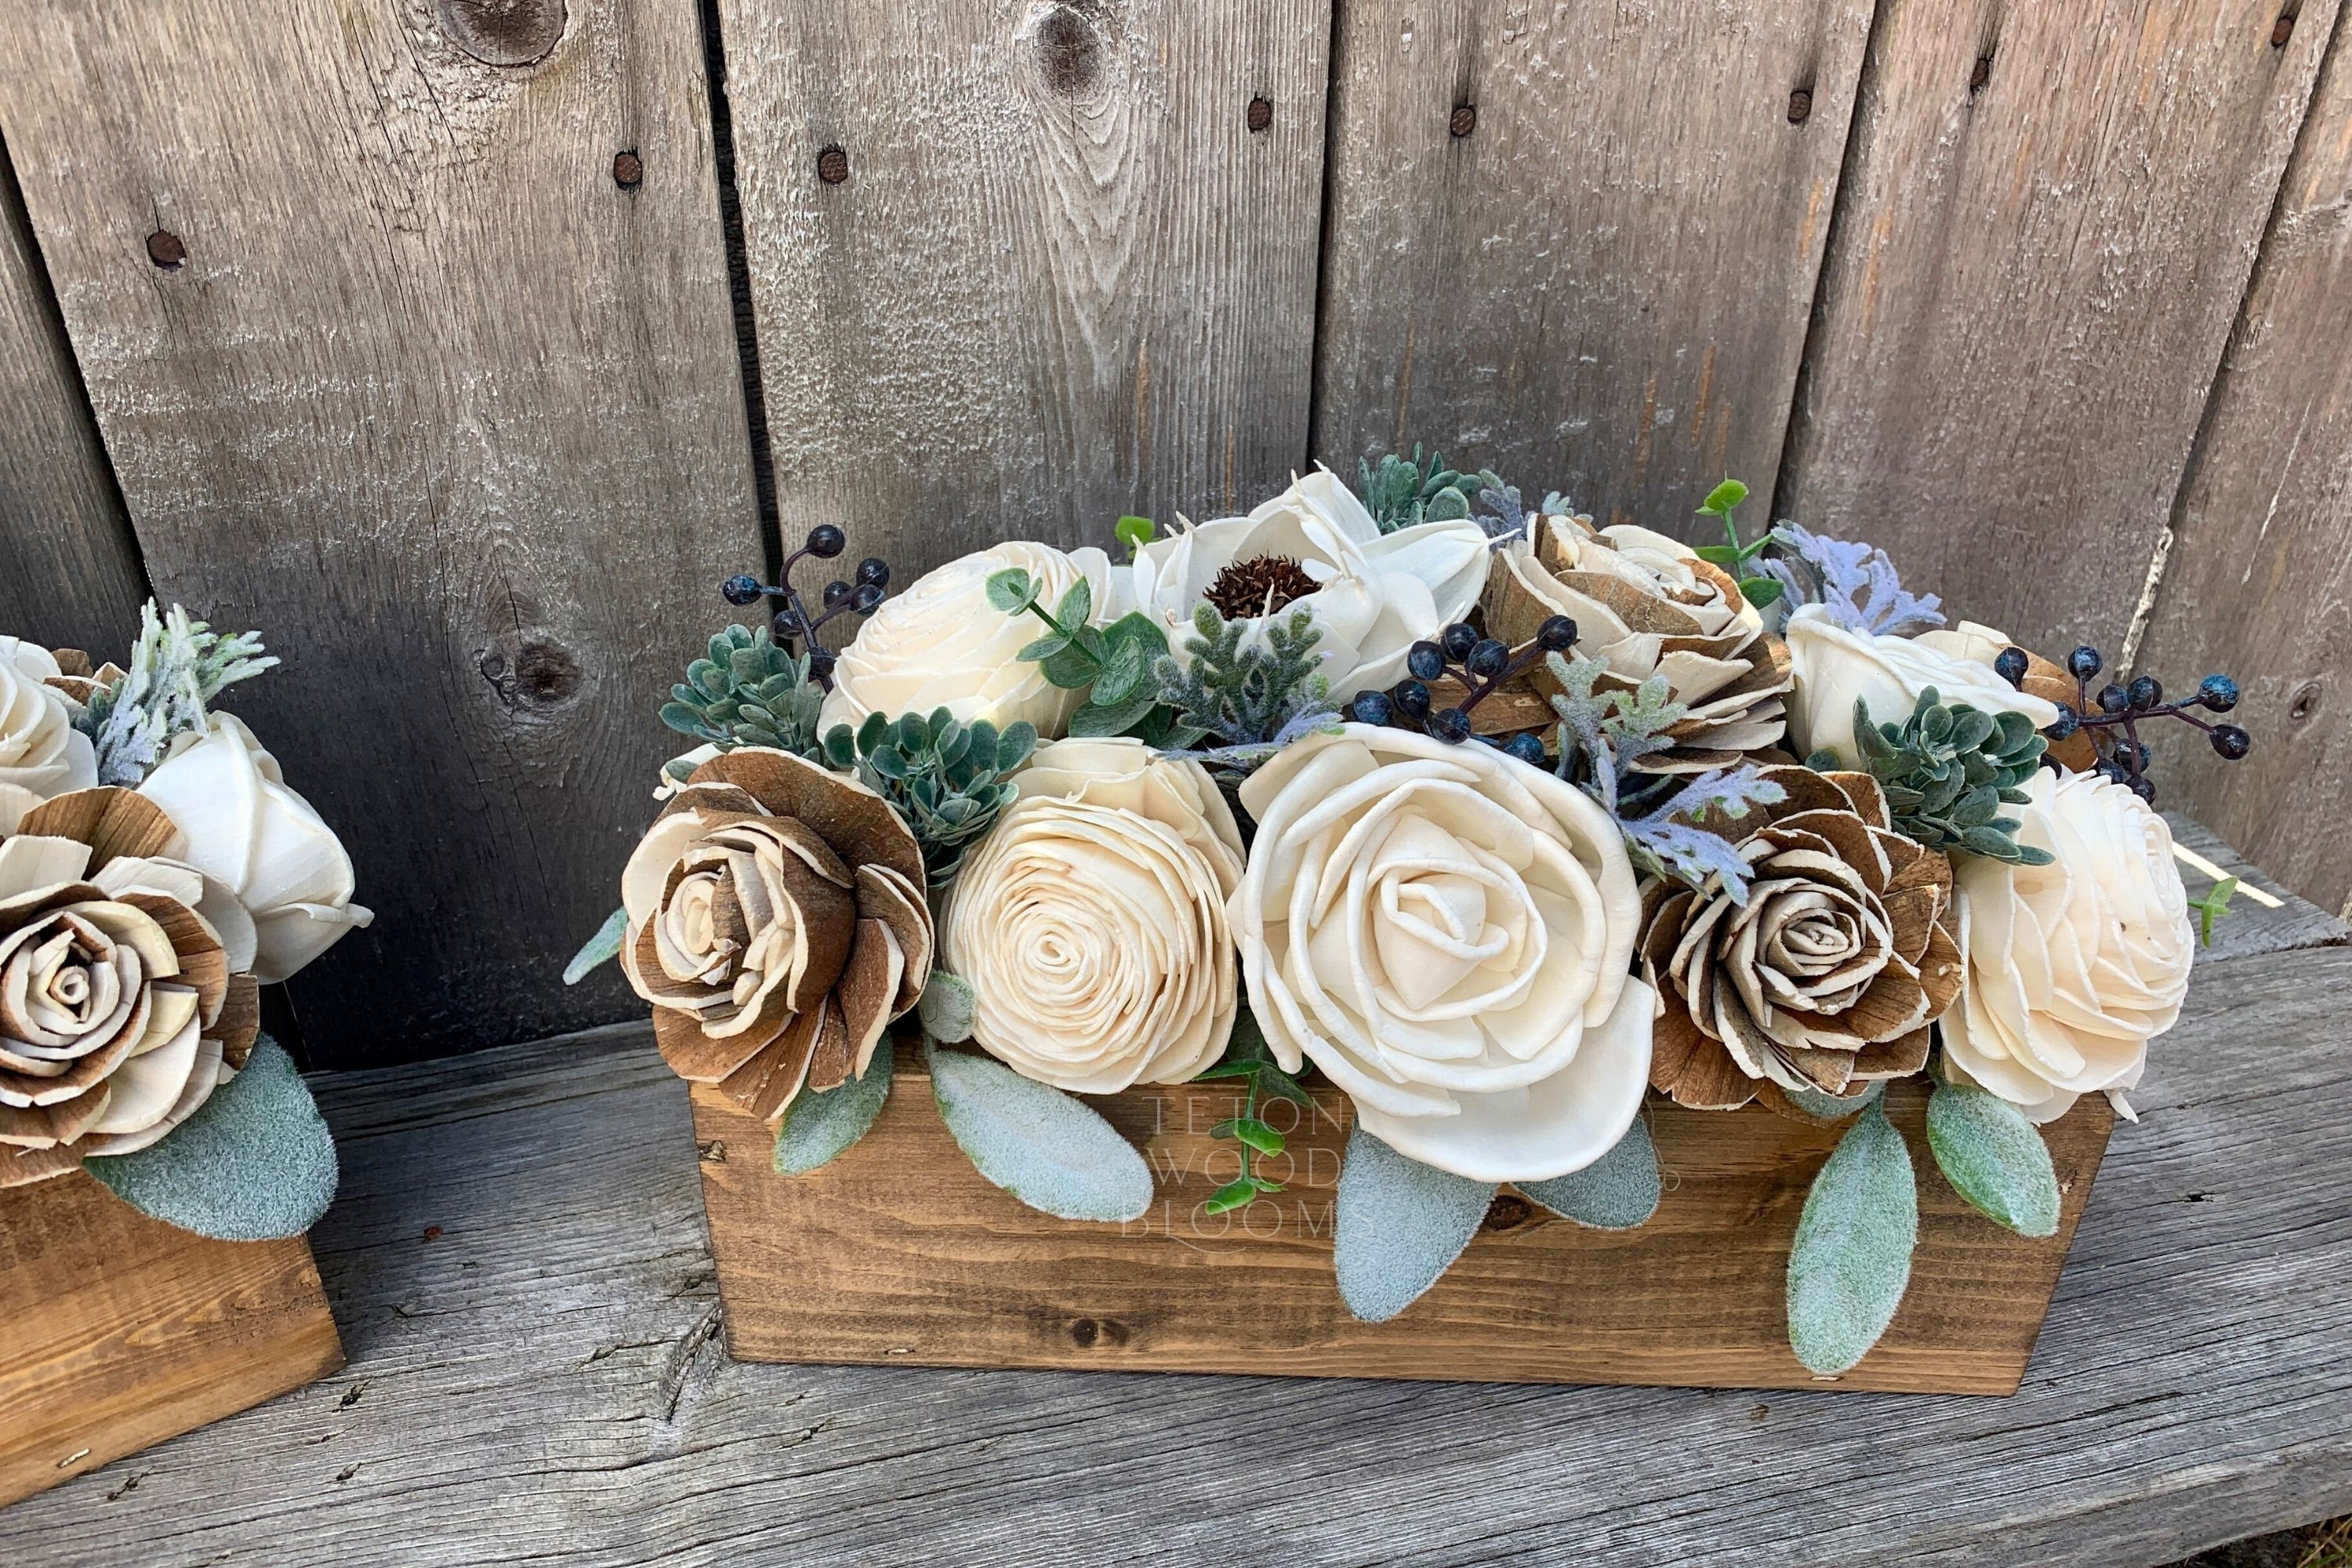 Farmhouse Centerpiece - 3 Sizes